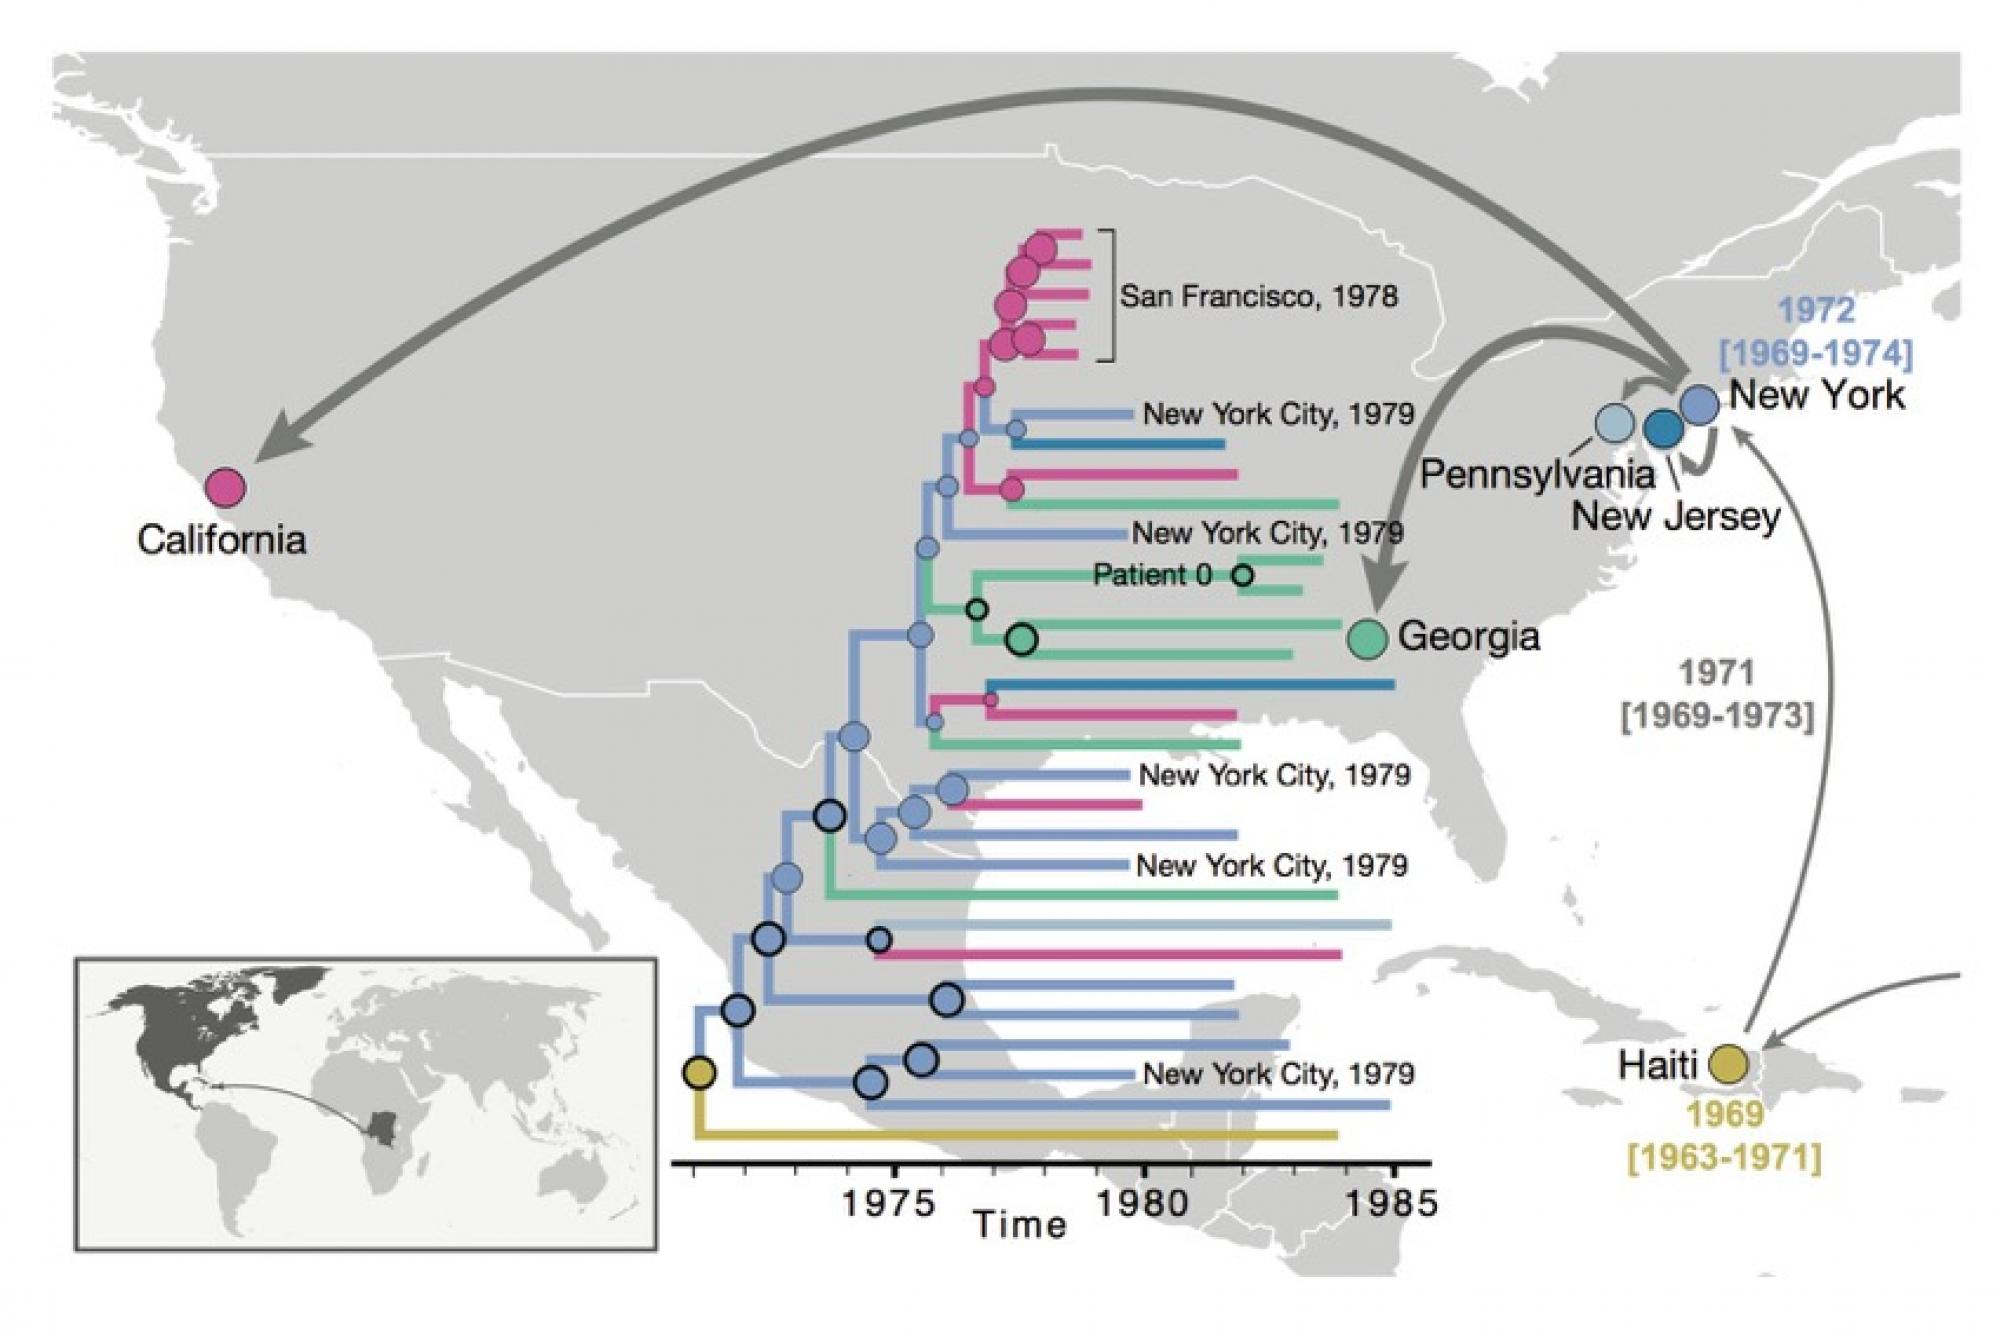 After HIV moved from Africa to the Caribbean, it first spread to New York and subsequently to different locations in the U.S. By constructing evolutionary trees of the various HIV strains as far back as the 1970s, the researchers found evidence that the v